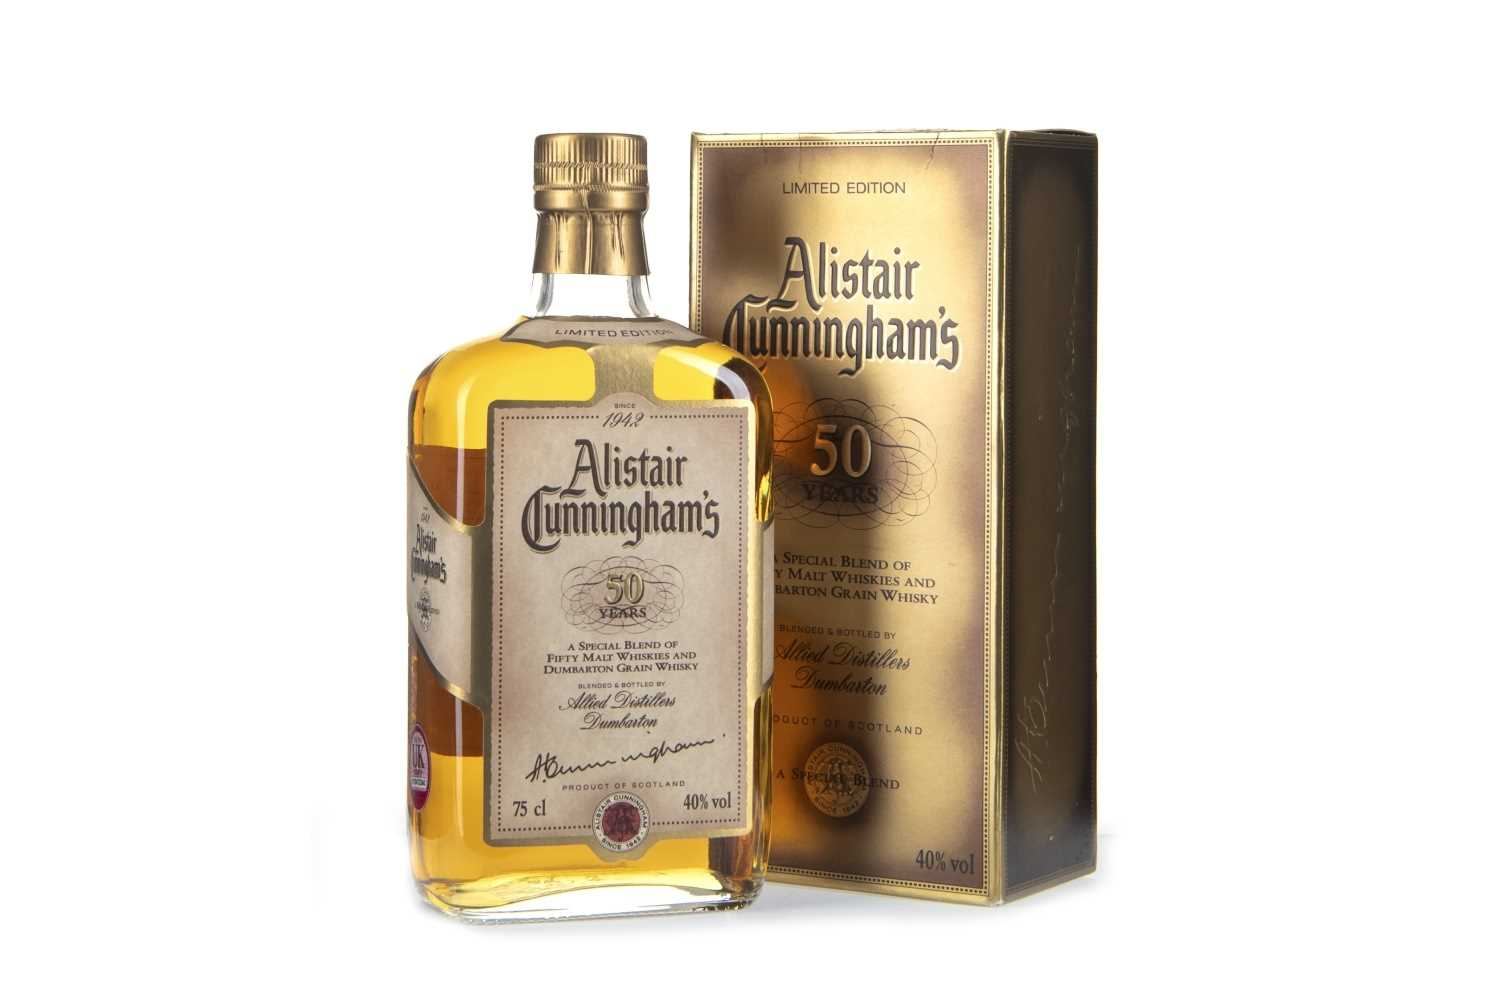 Lot 403 - ALISTAIR CUNNINGHAM'S 50 YEARS